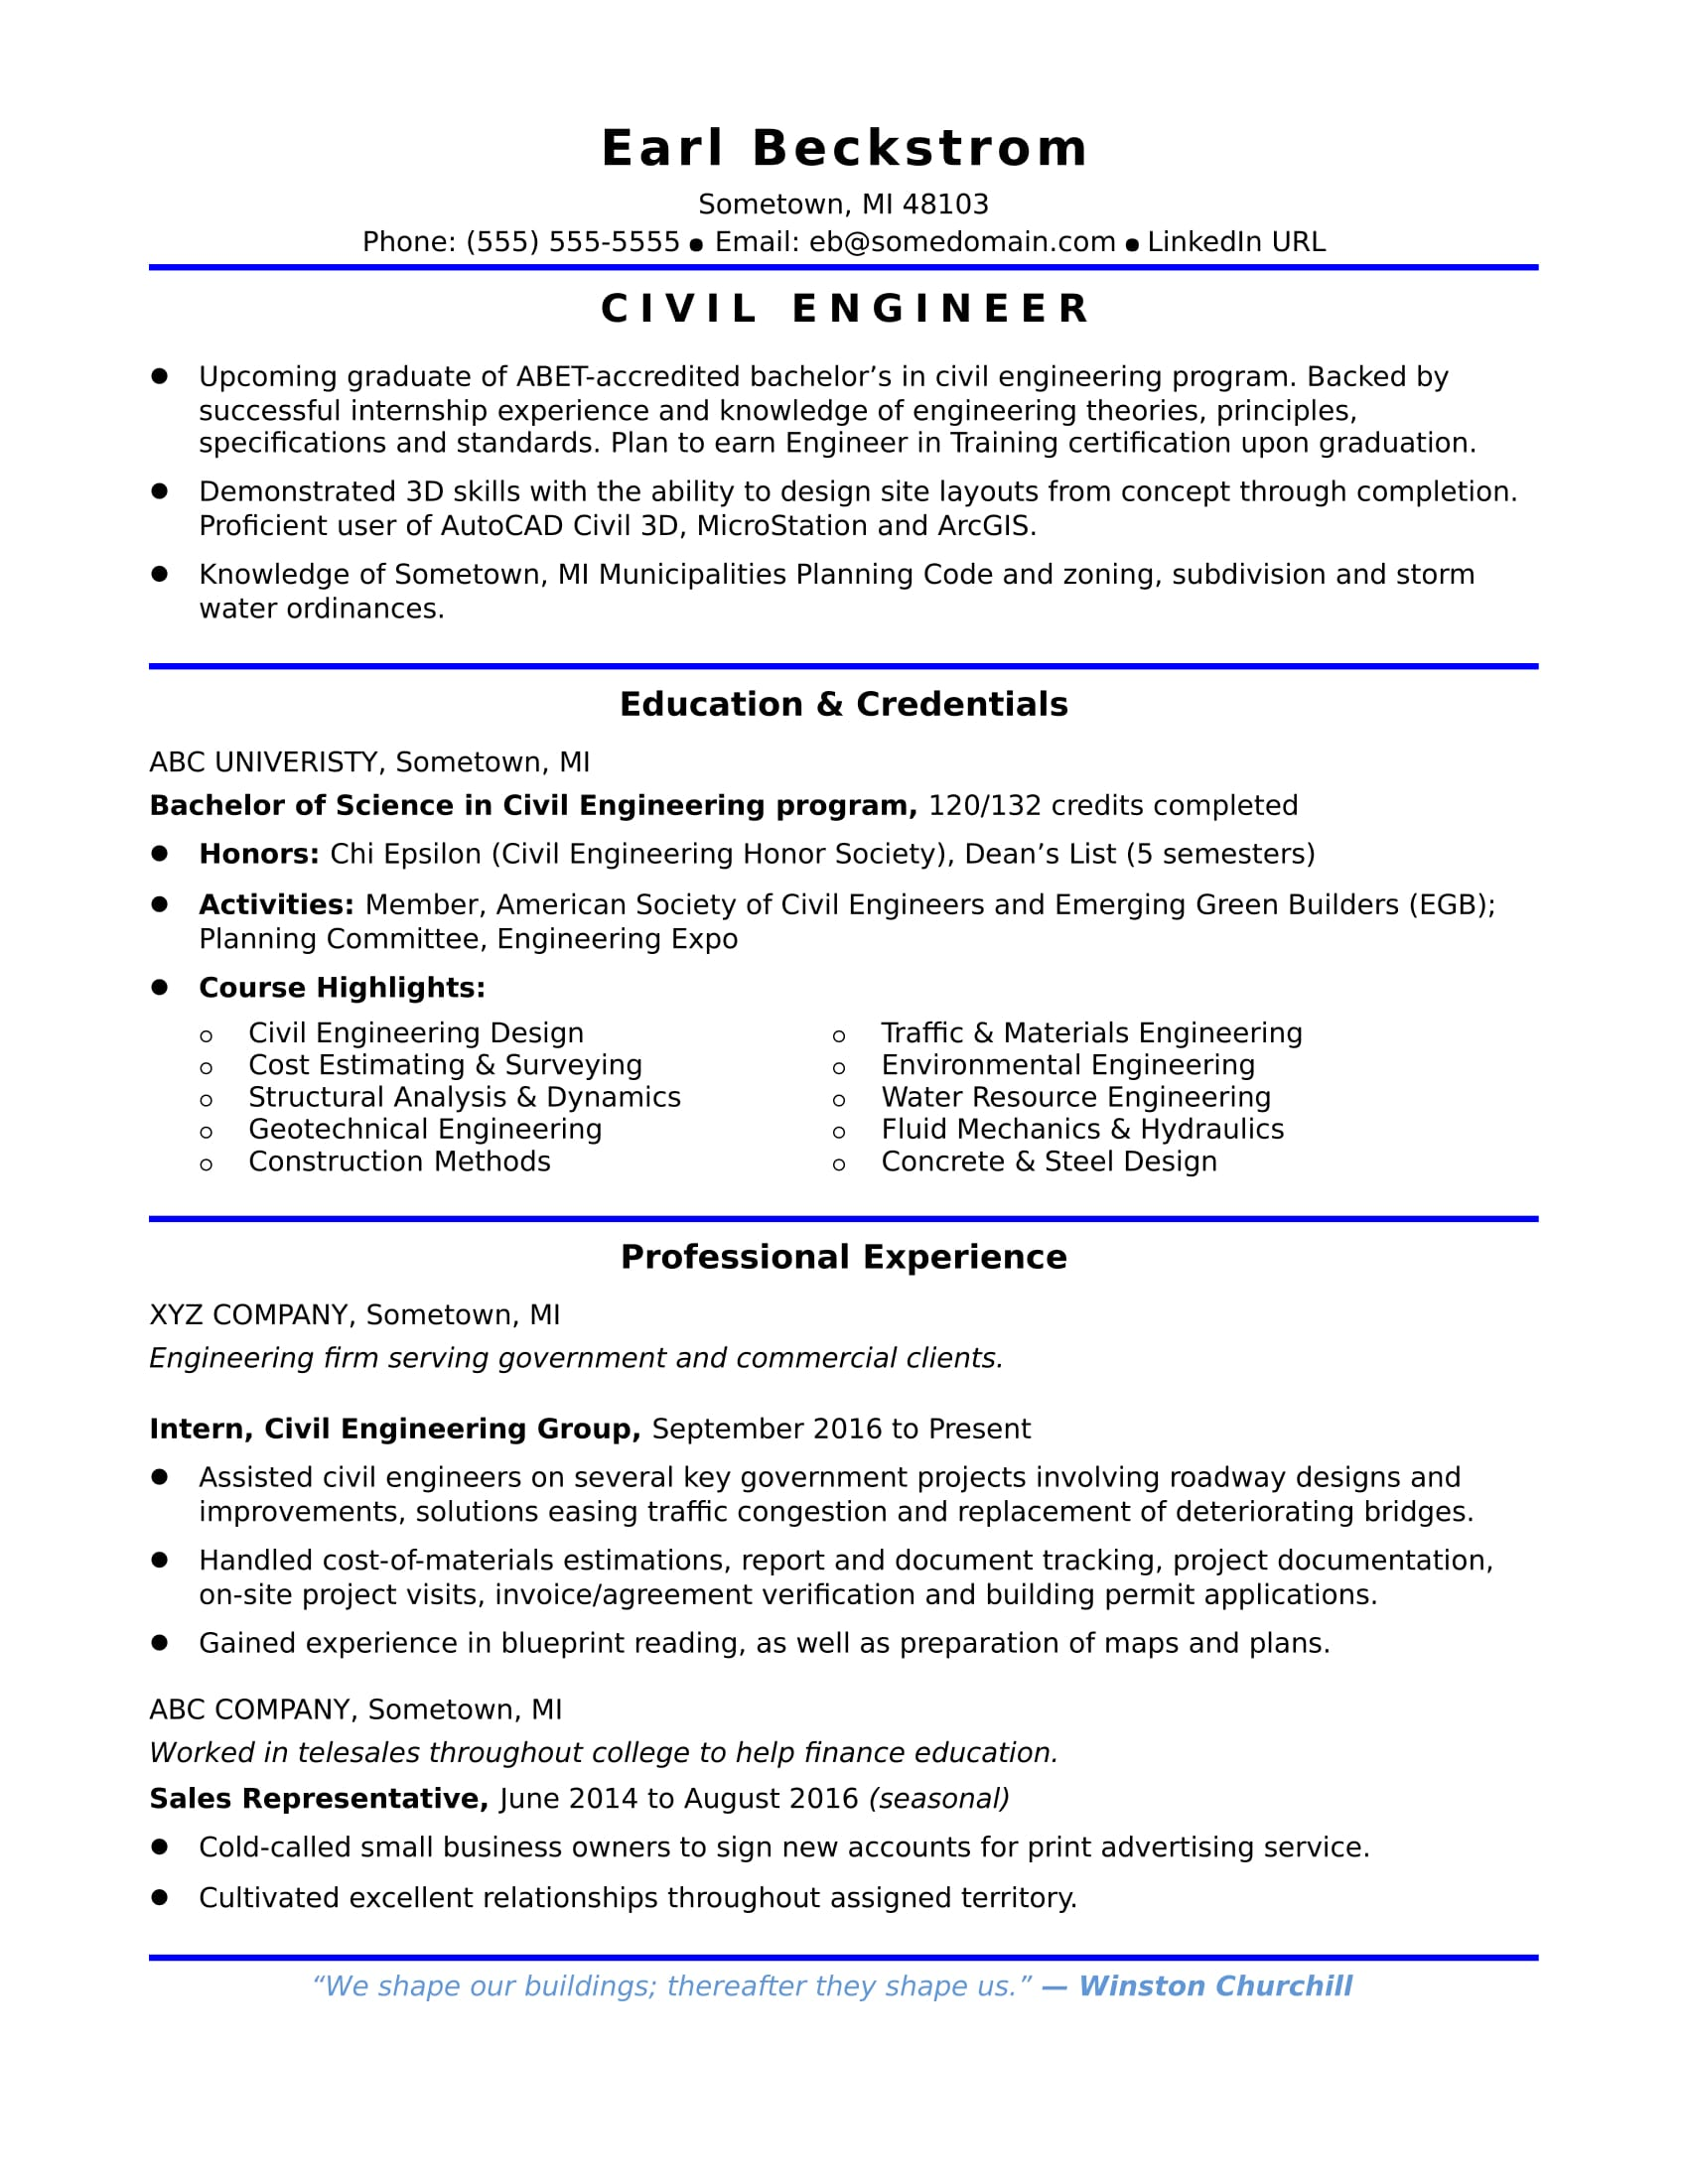 Resum Simple Sample Resume for an EntryLevel Civil Engineer Monster